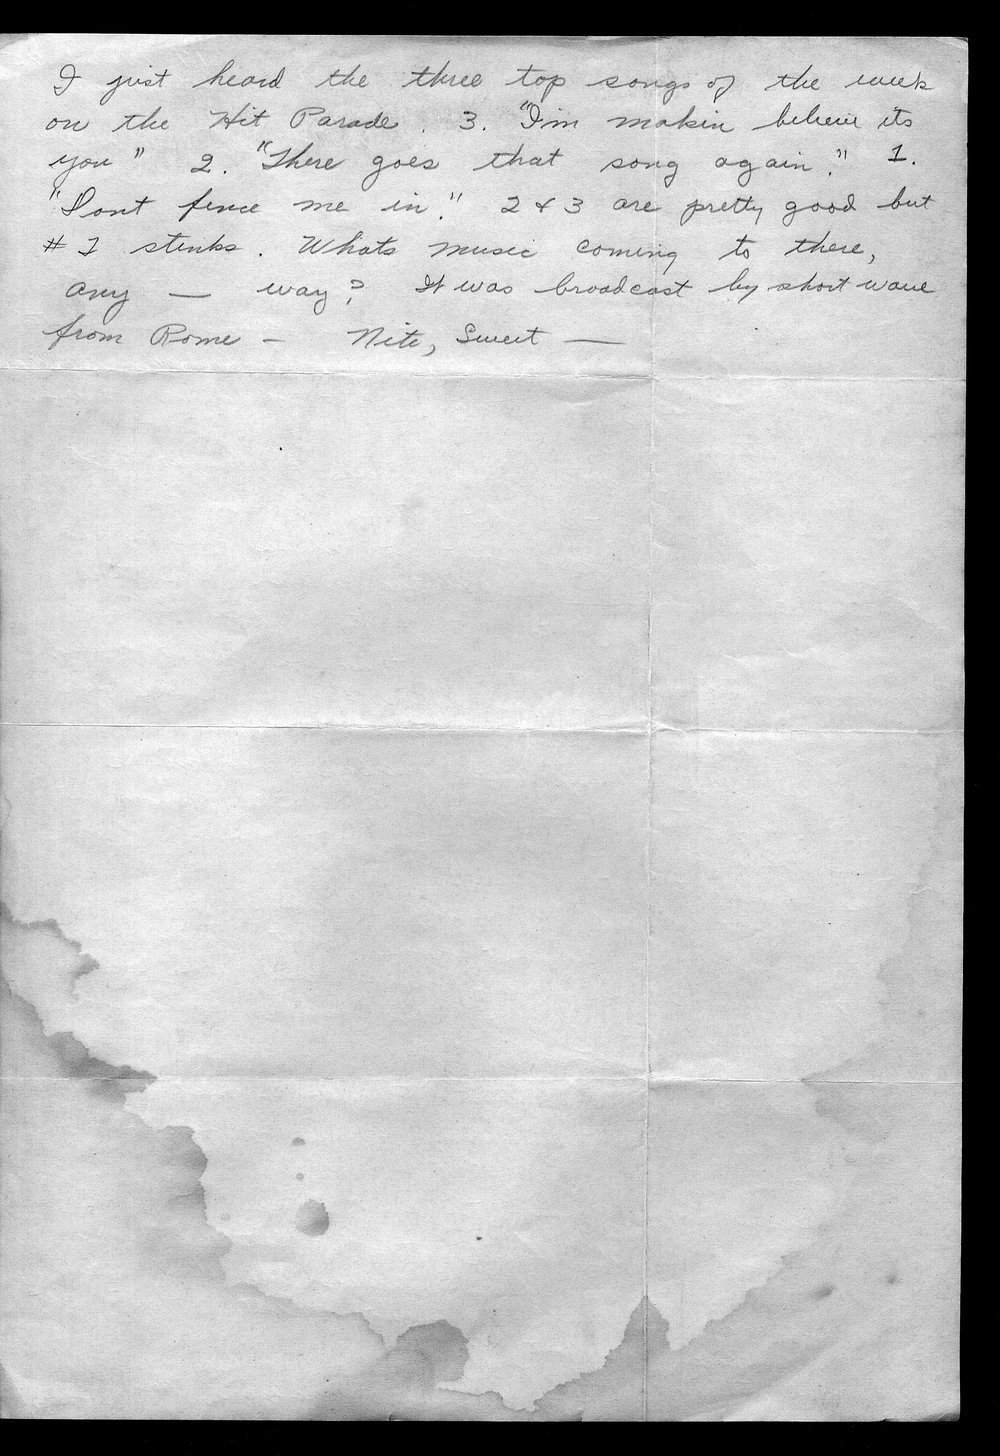 Letters from Hilton Parris Mize to his wife Irene Rosenberger Mize - 4